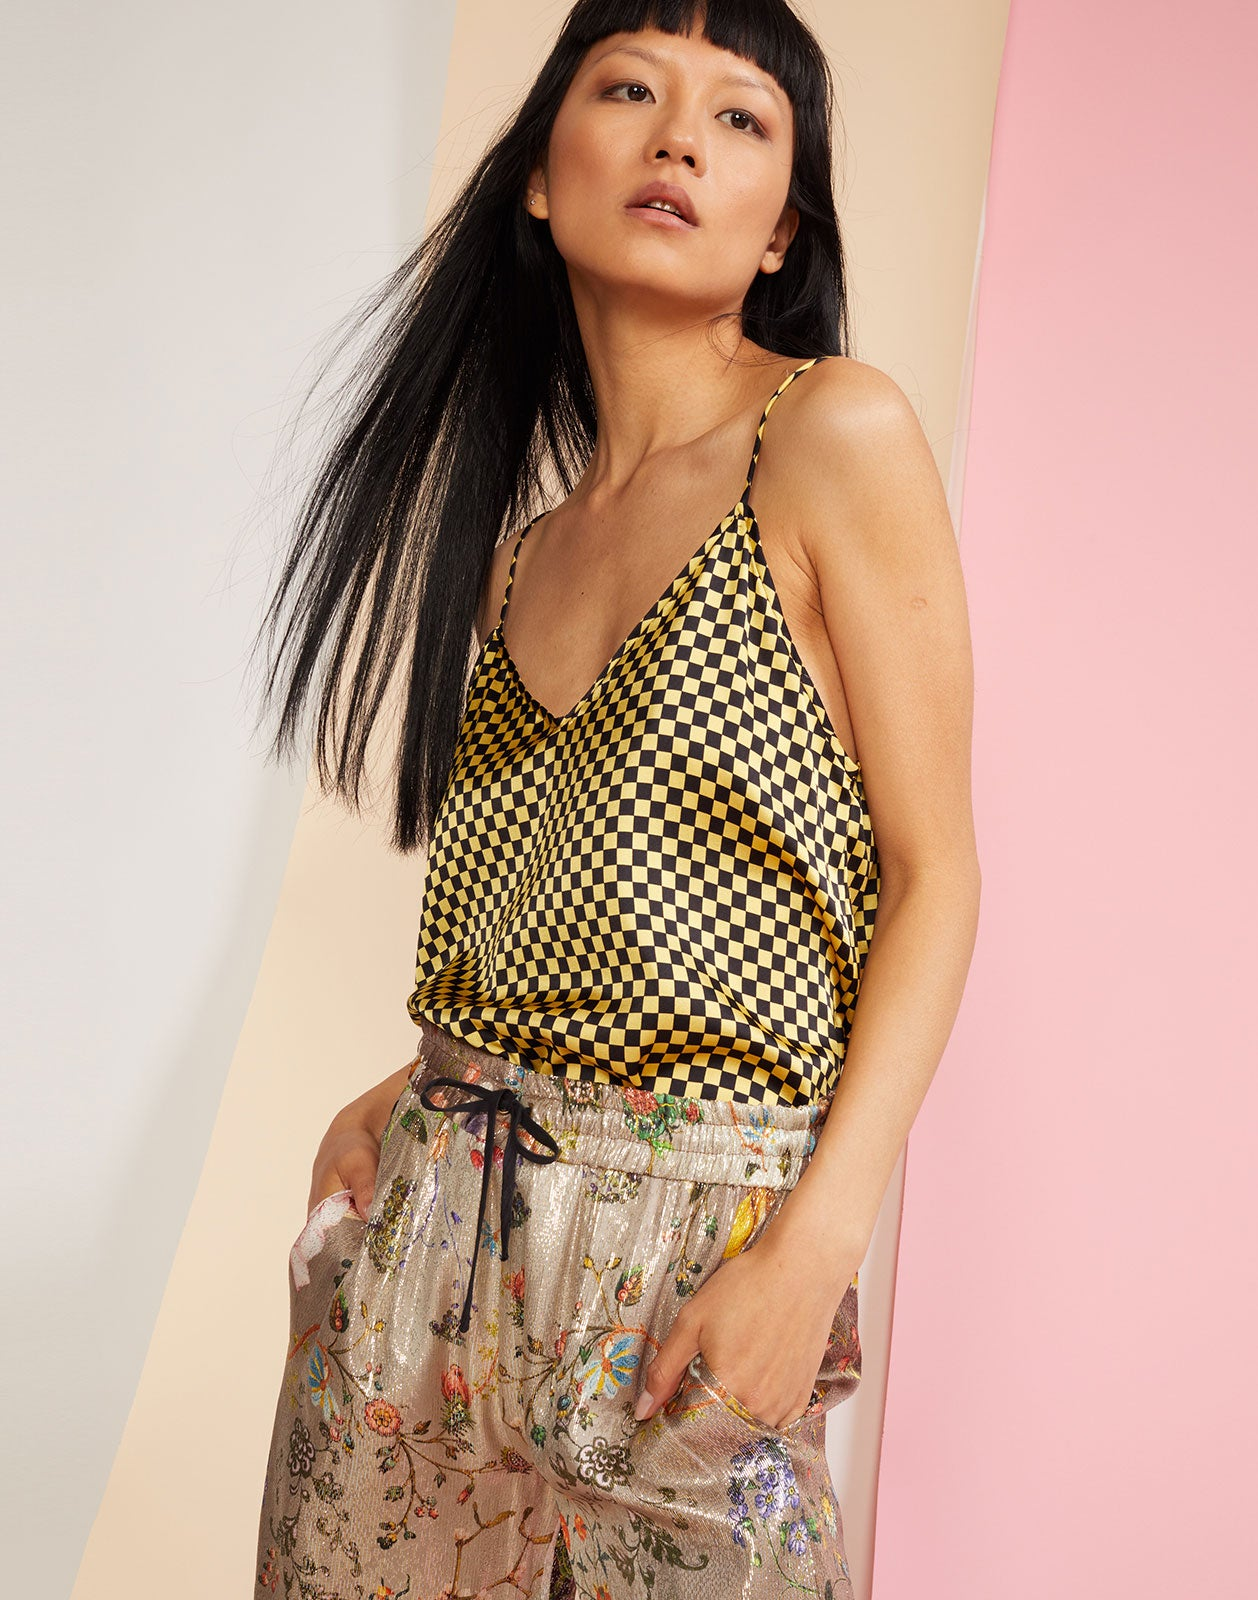 Side view of the v-neck spaghetti strap Checkmate Tank Top in yellow and black check print silk.